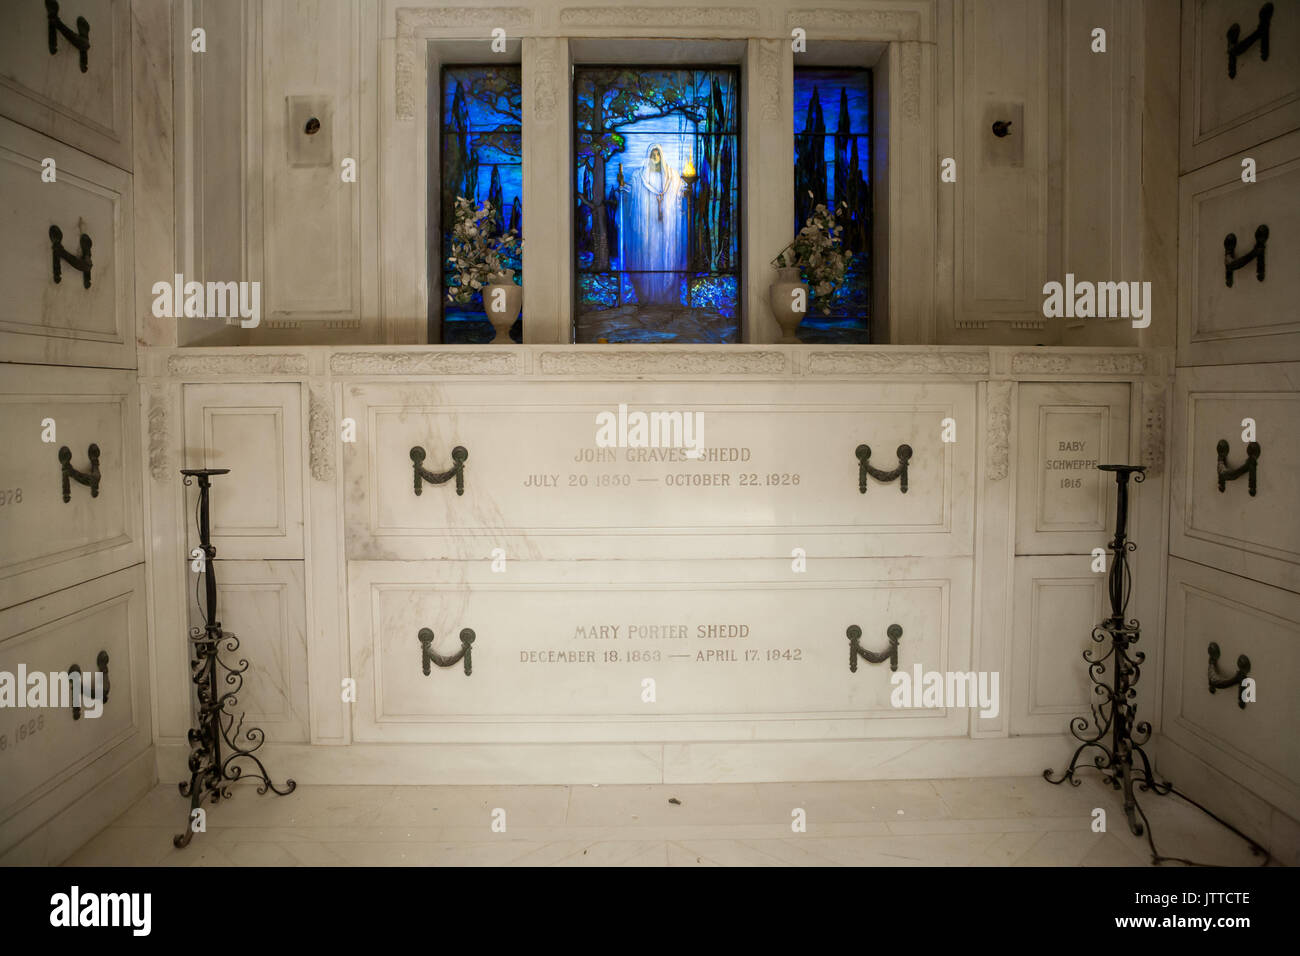 Shedd crypt at Rosehill Mausoleum in Chicago, Illinois. - Stock Image